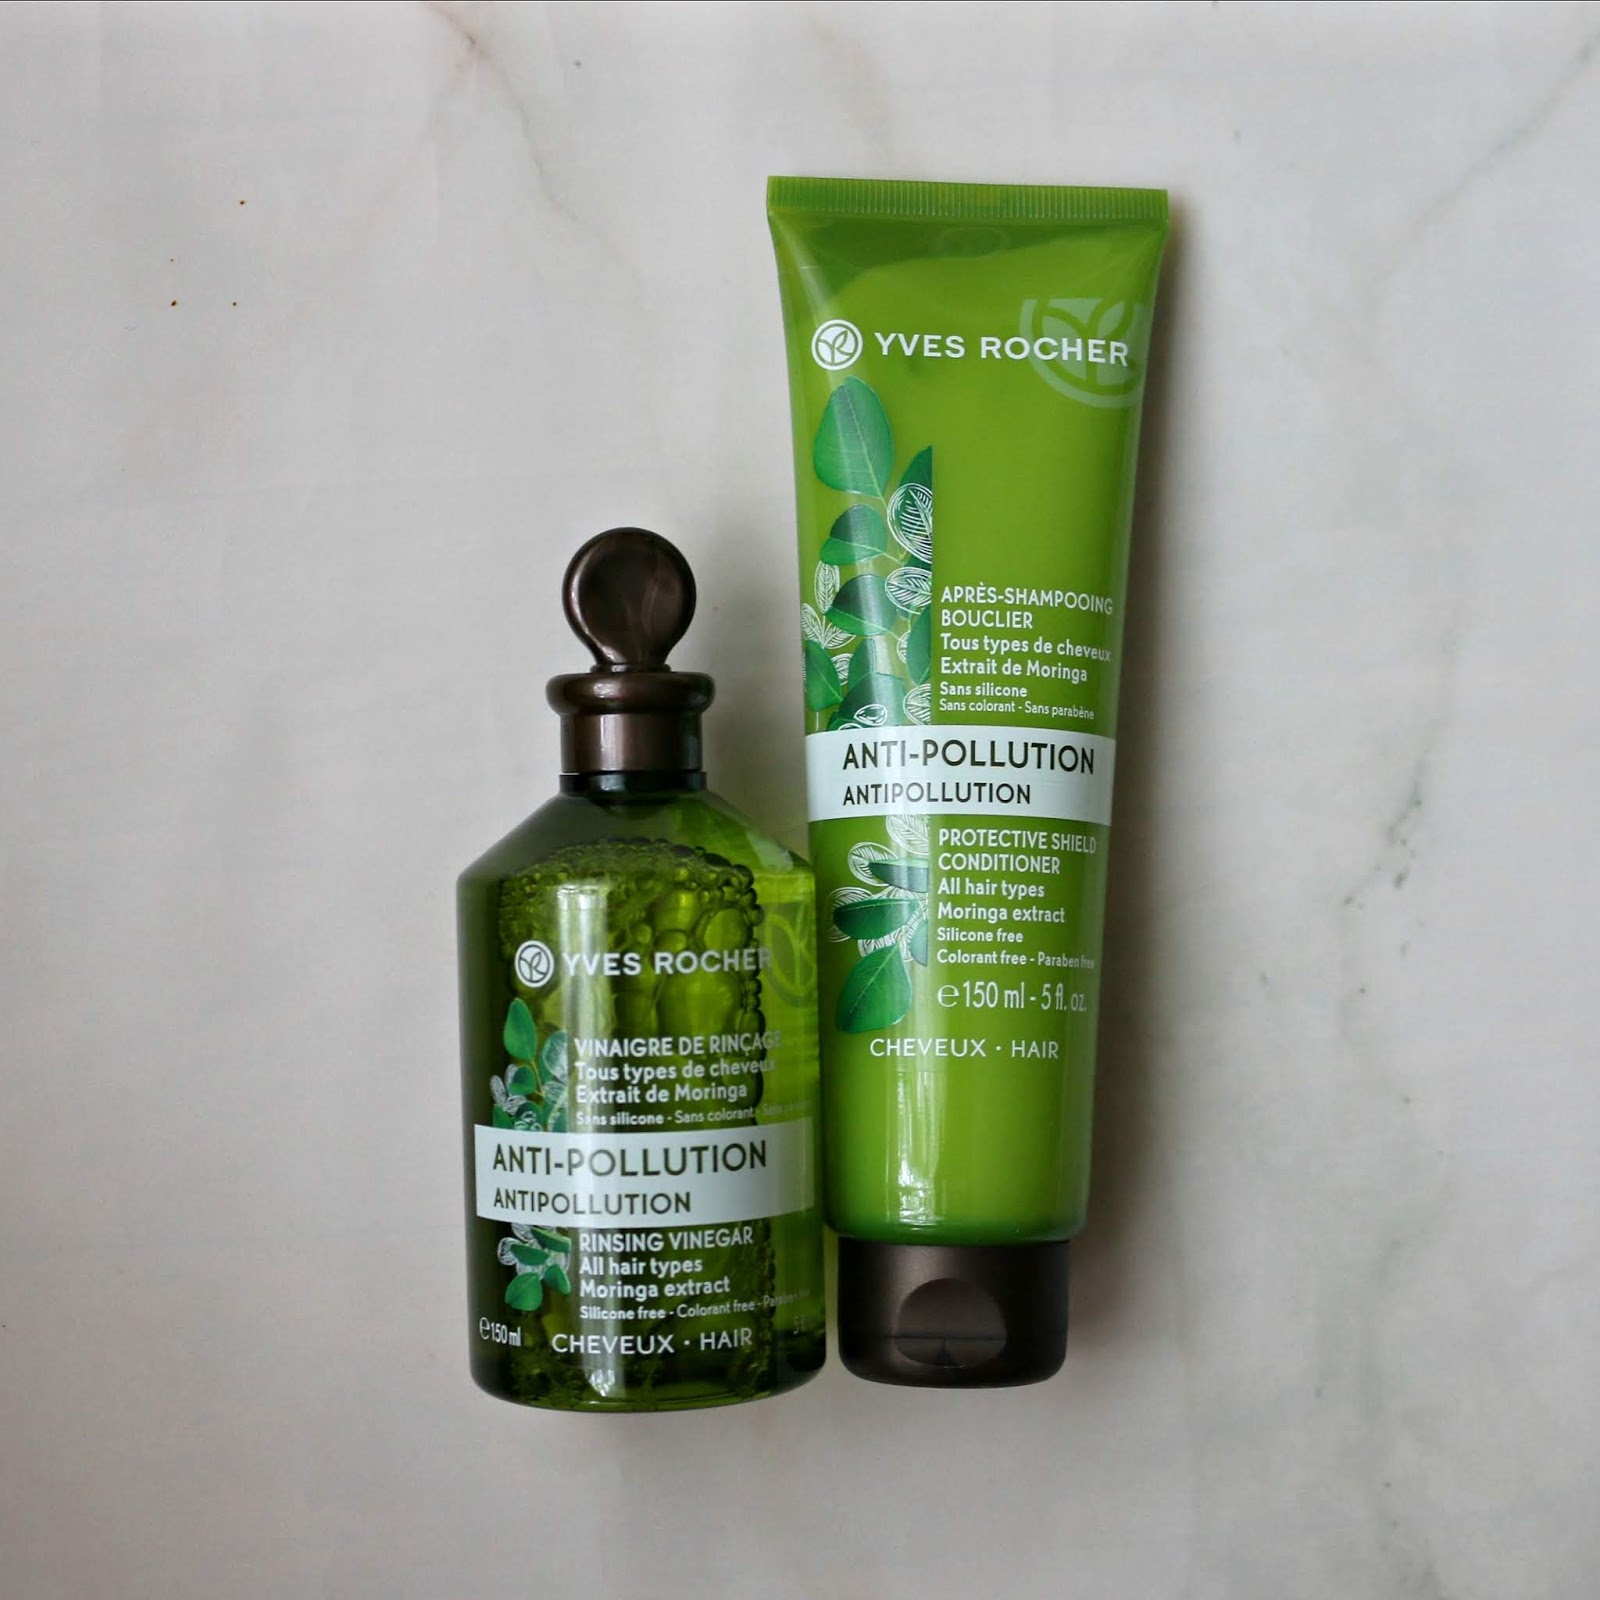 Yves Rocher Antipollution Rinsing Vinegar Detox Protective Shield Conditioner